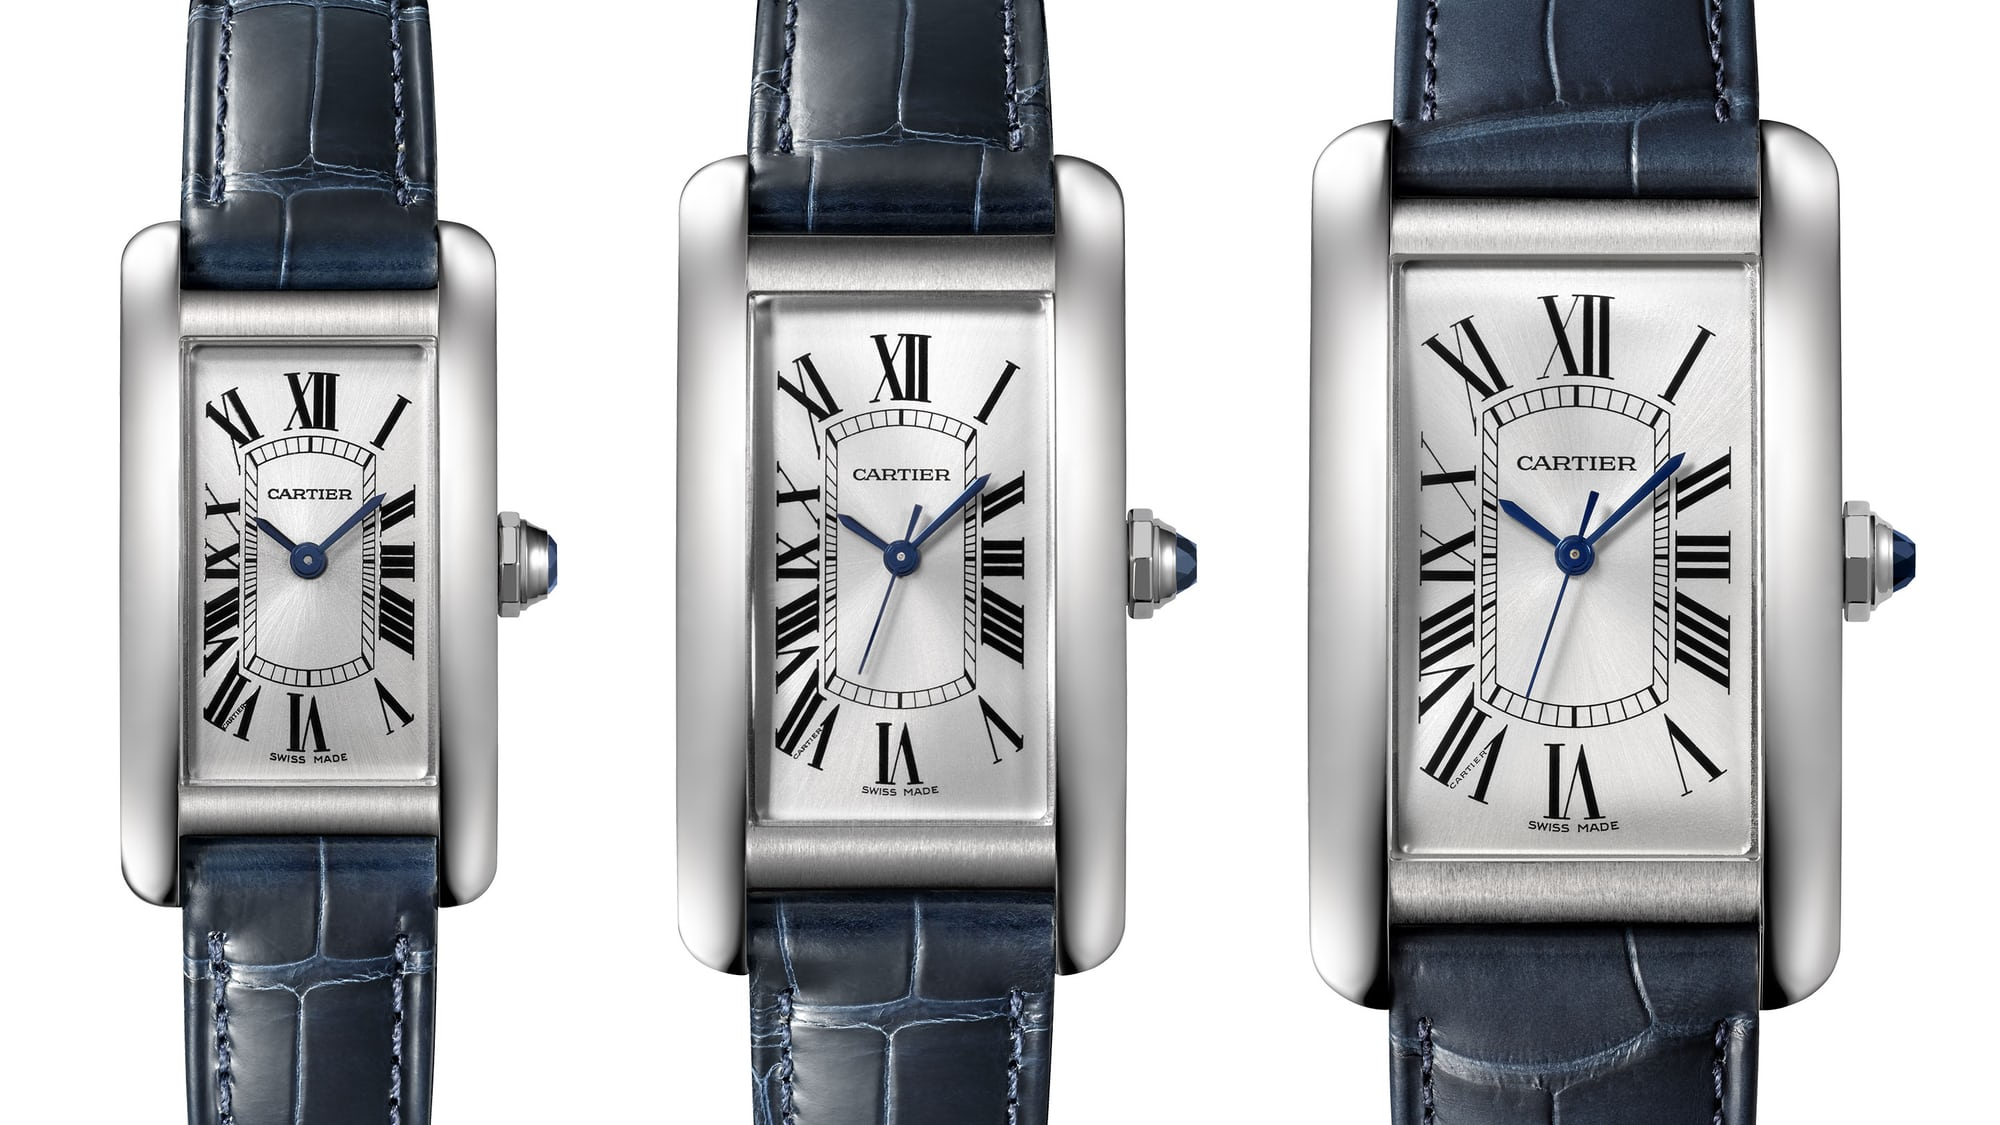 Americaine.jpg?ixlib=rails 1.1 Introducing: The Cartier Tank Americaine In Stainless Steel Introducing: The Cartier Tank Americaine In Stainless Steel americaine